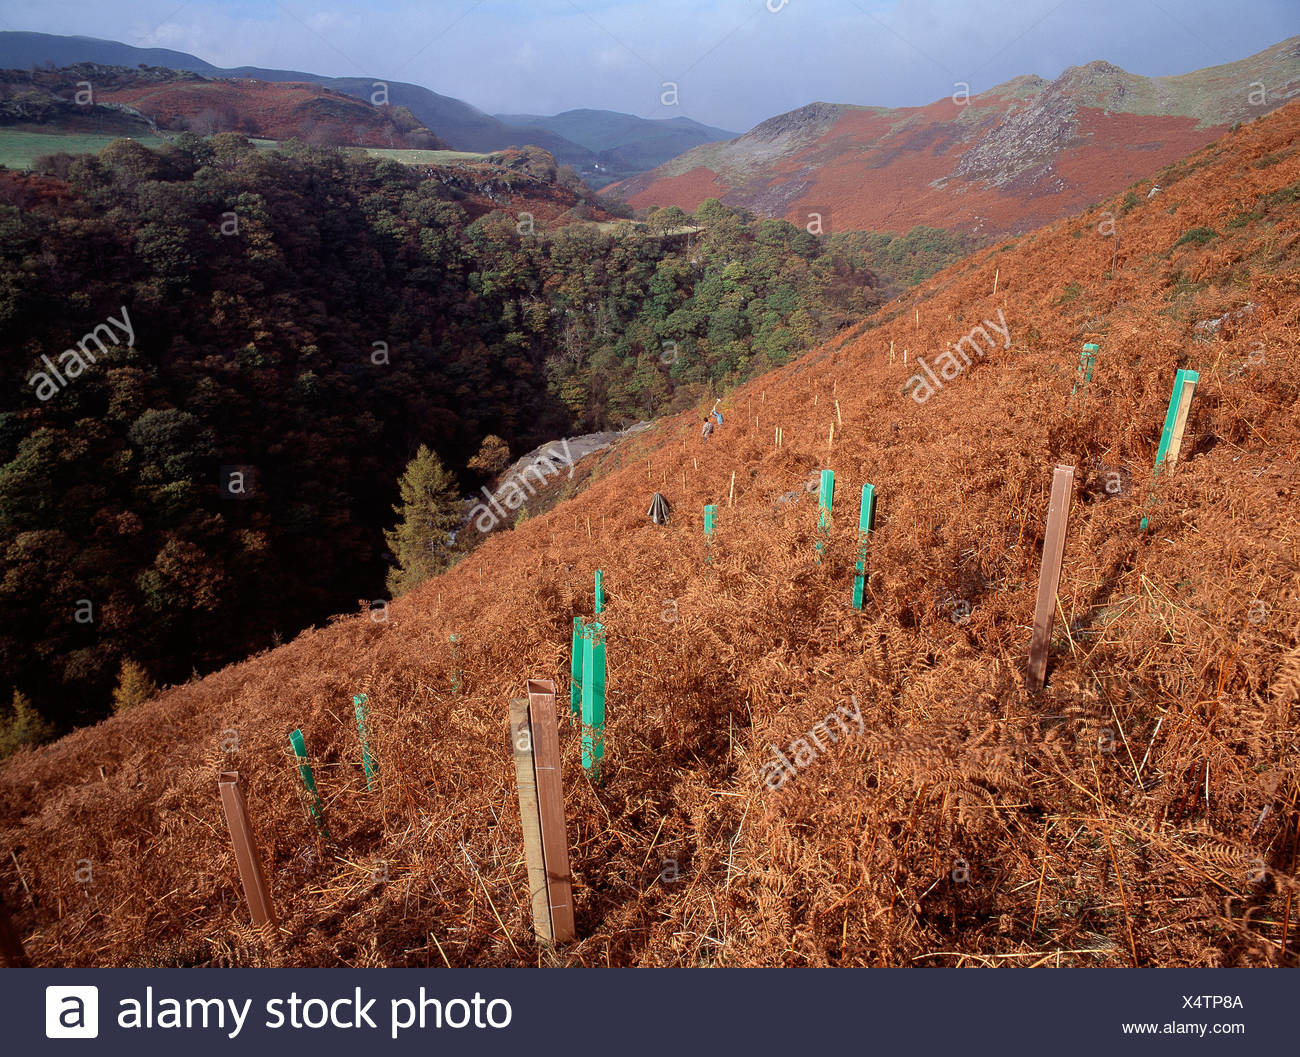 Replanting trees - Stock Image